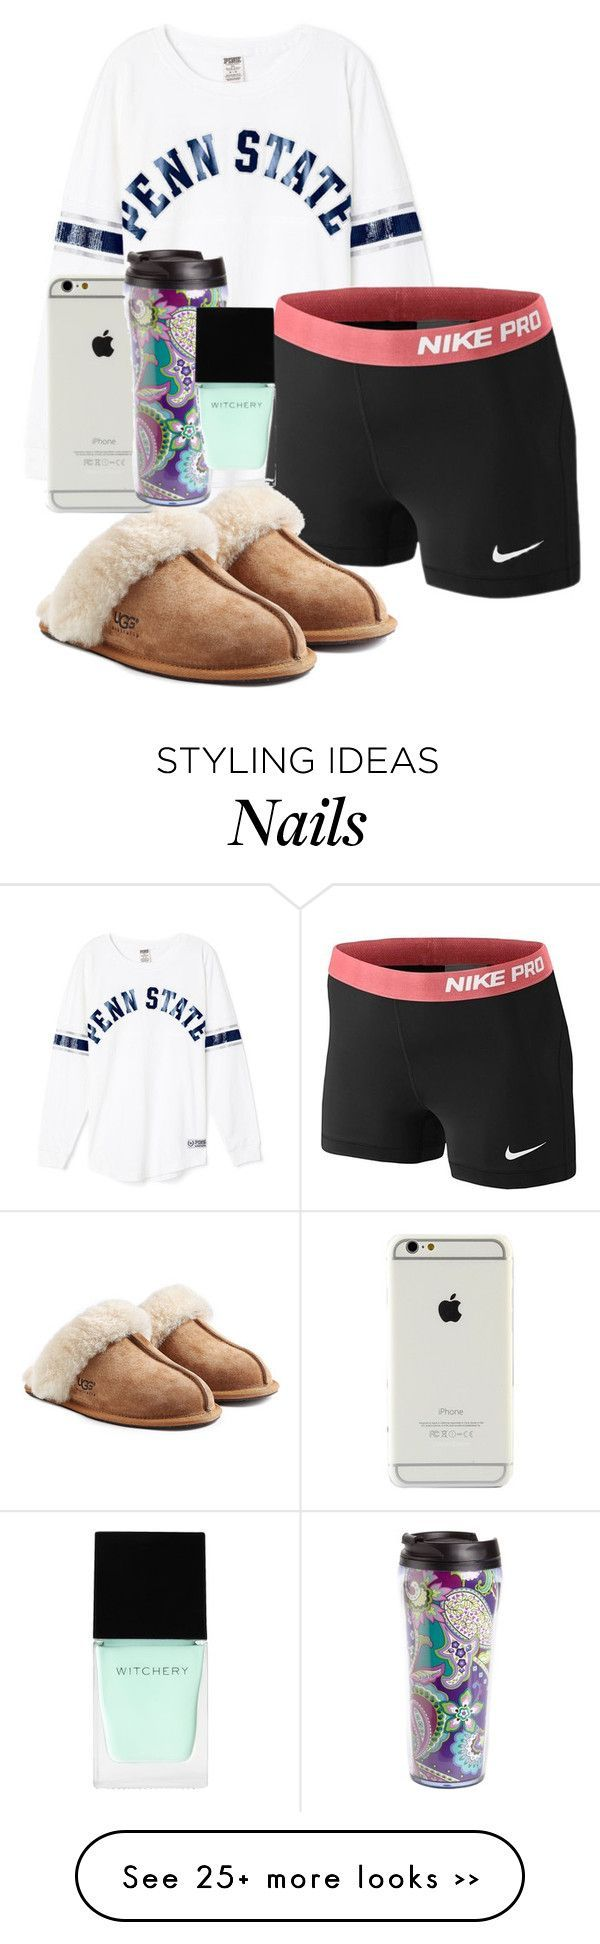 """when with bae"" by sofiaestrada on Polyvore featuring NIKE, UGG Australia, Vera Bradley and Witchery"